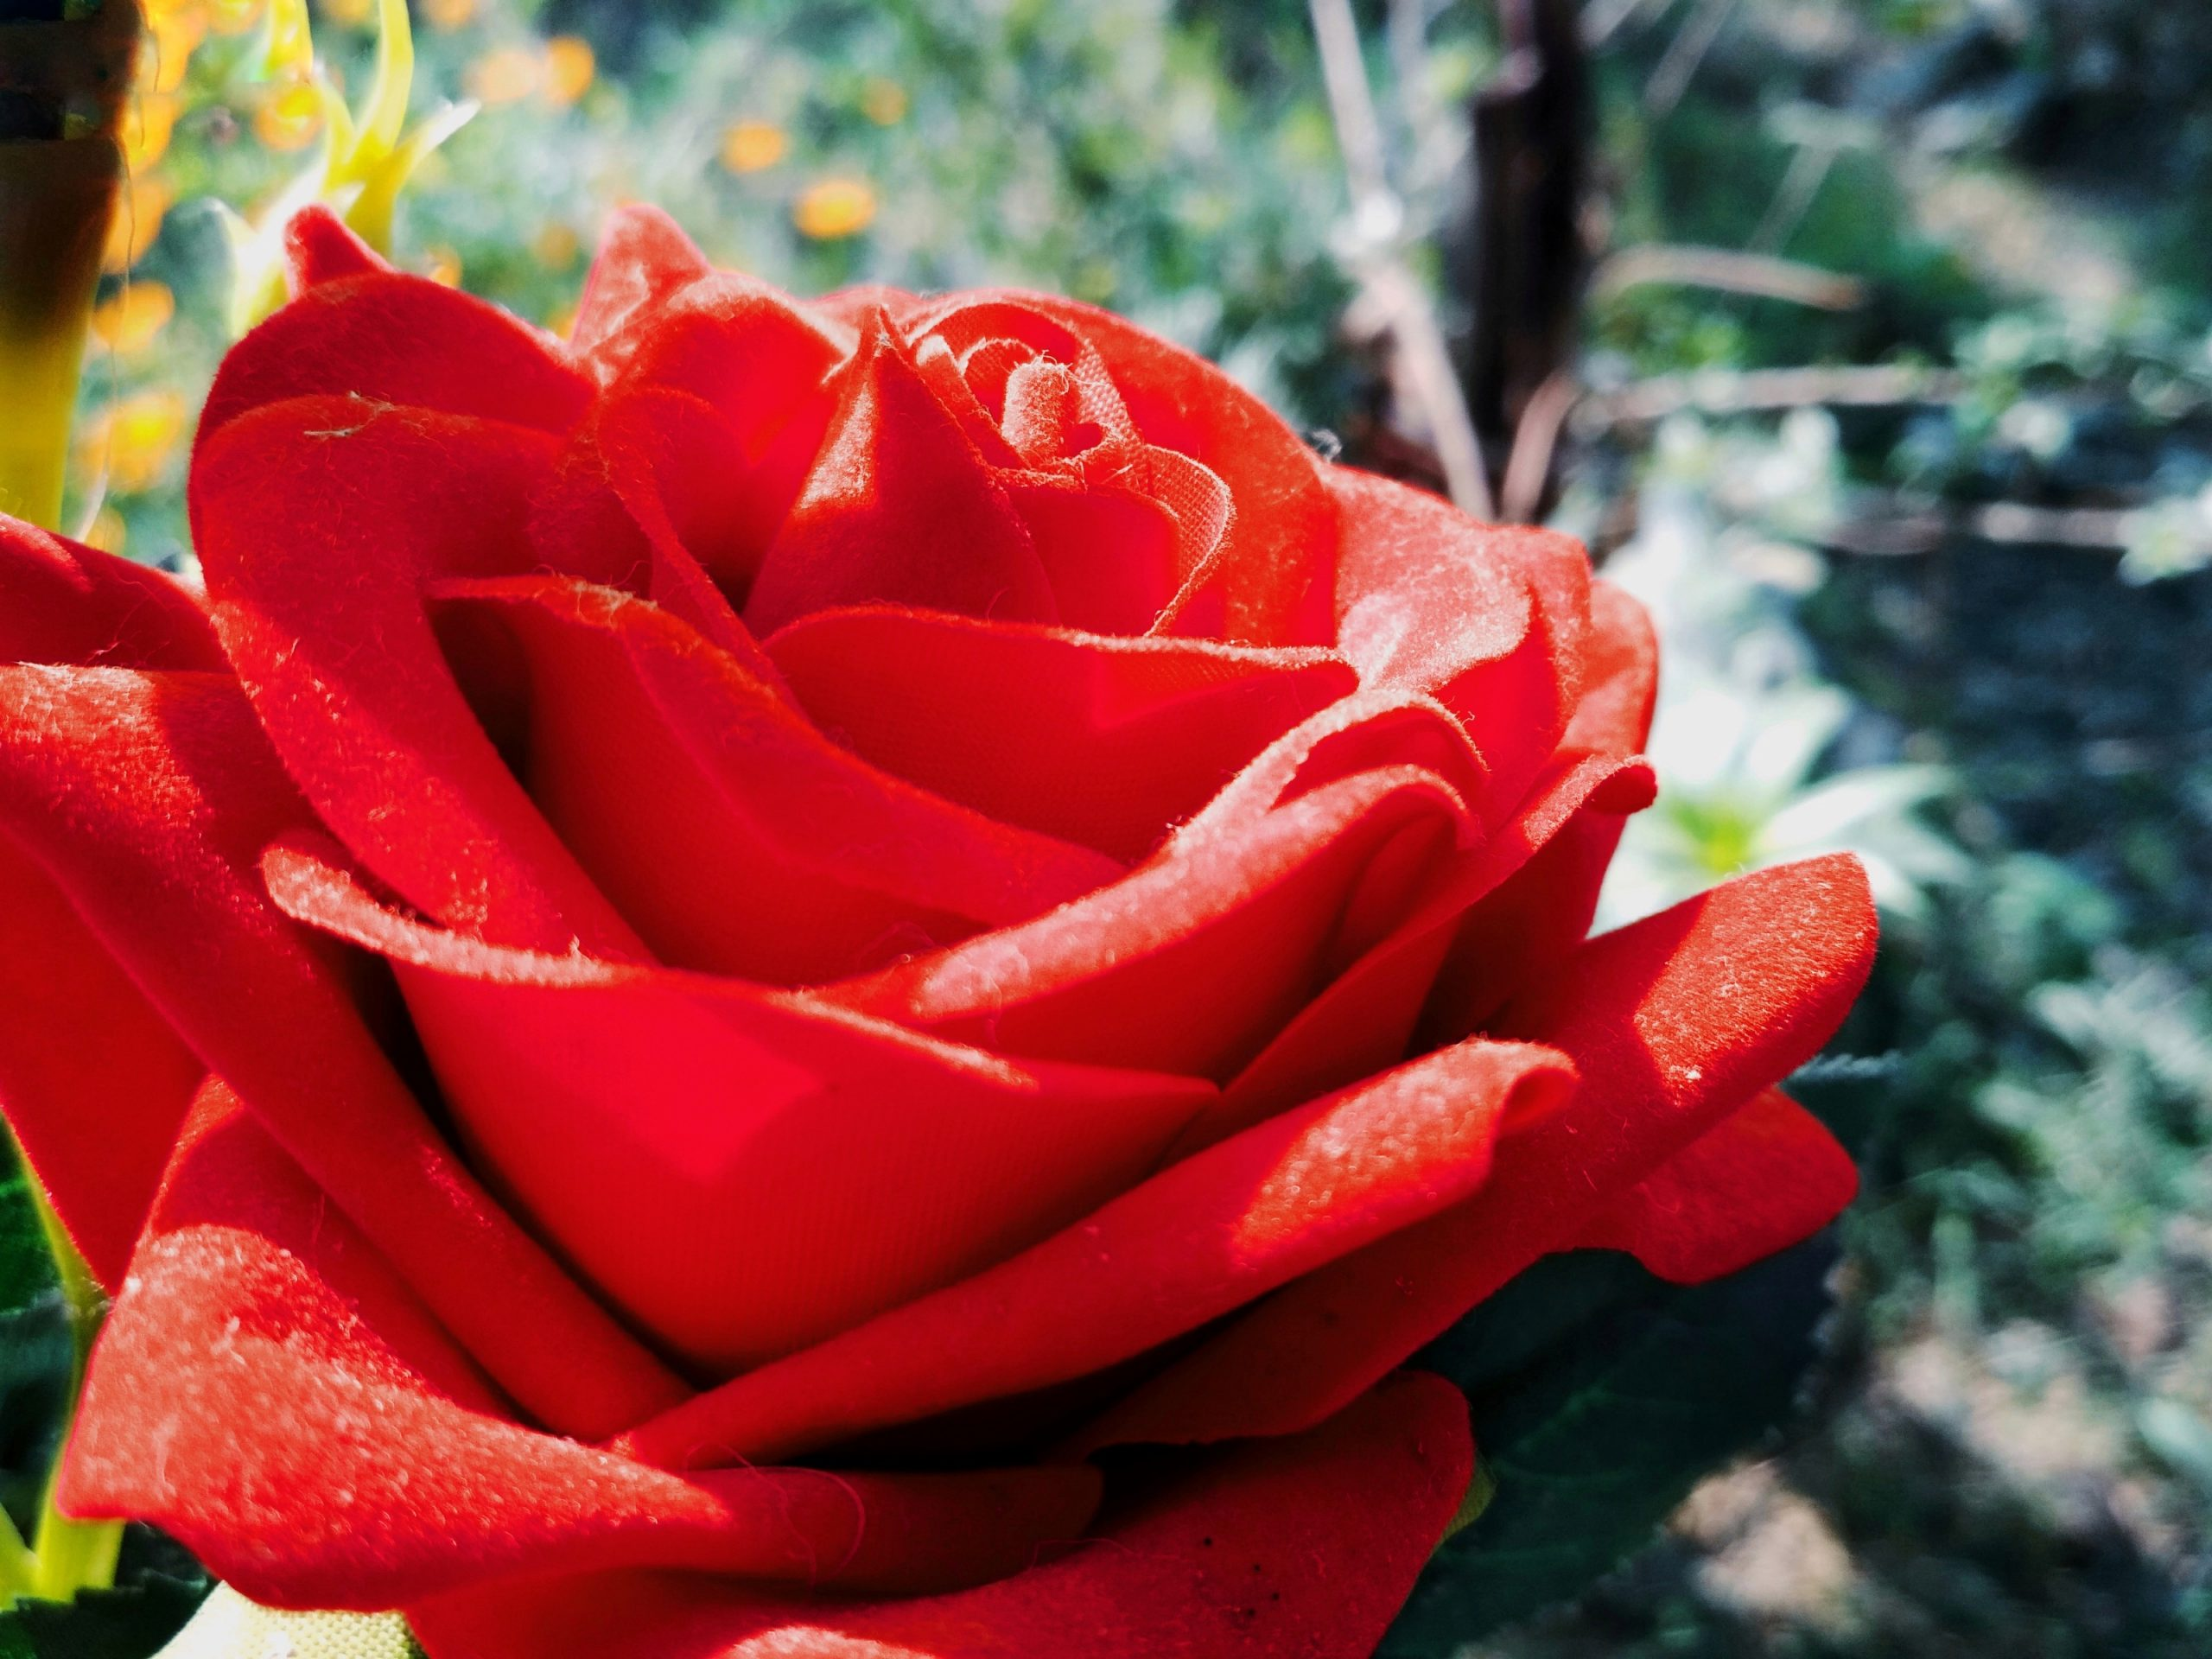 A red rose in the garden